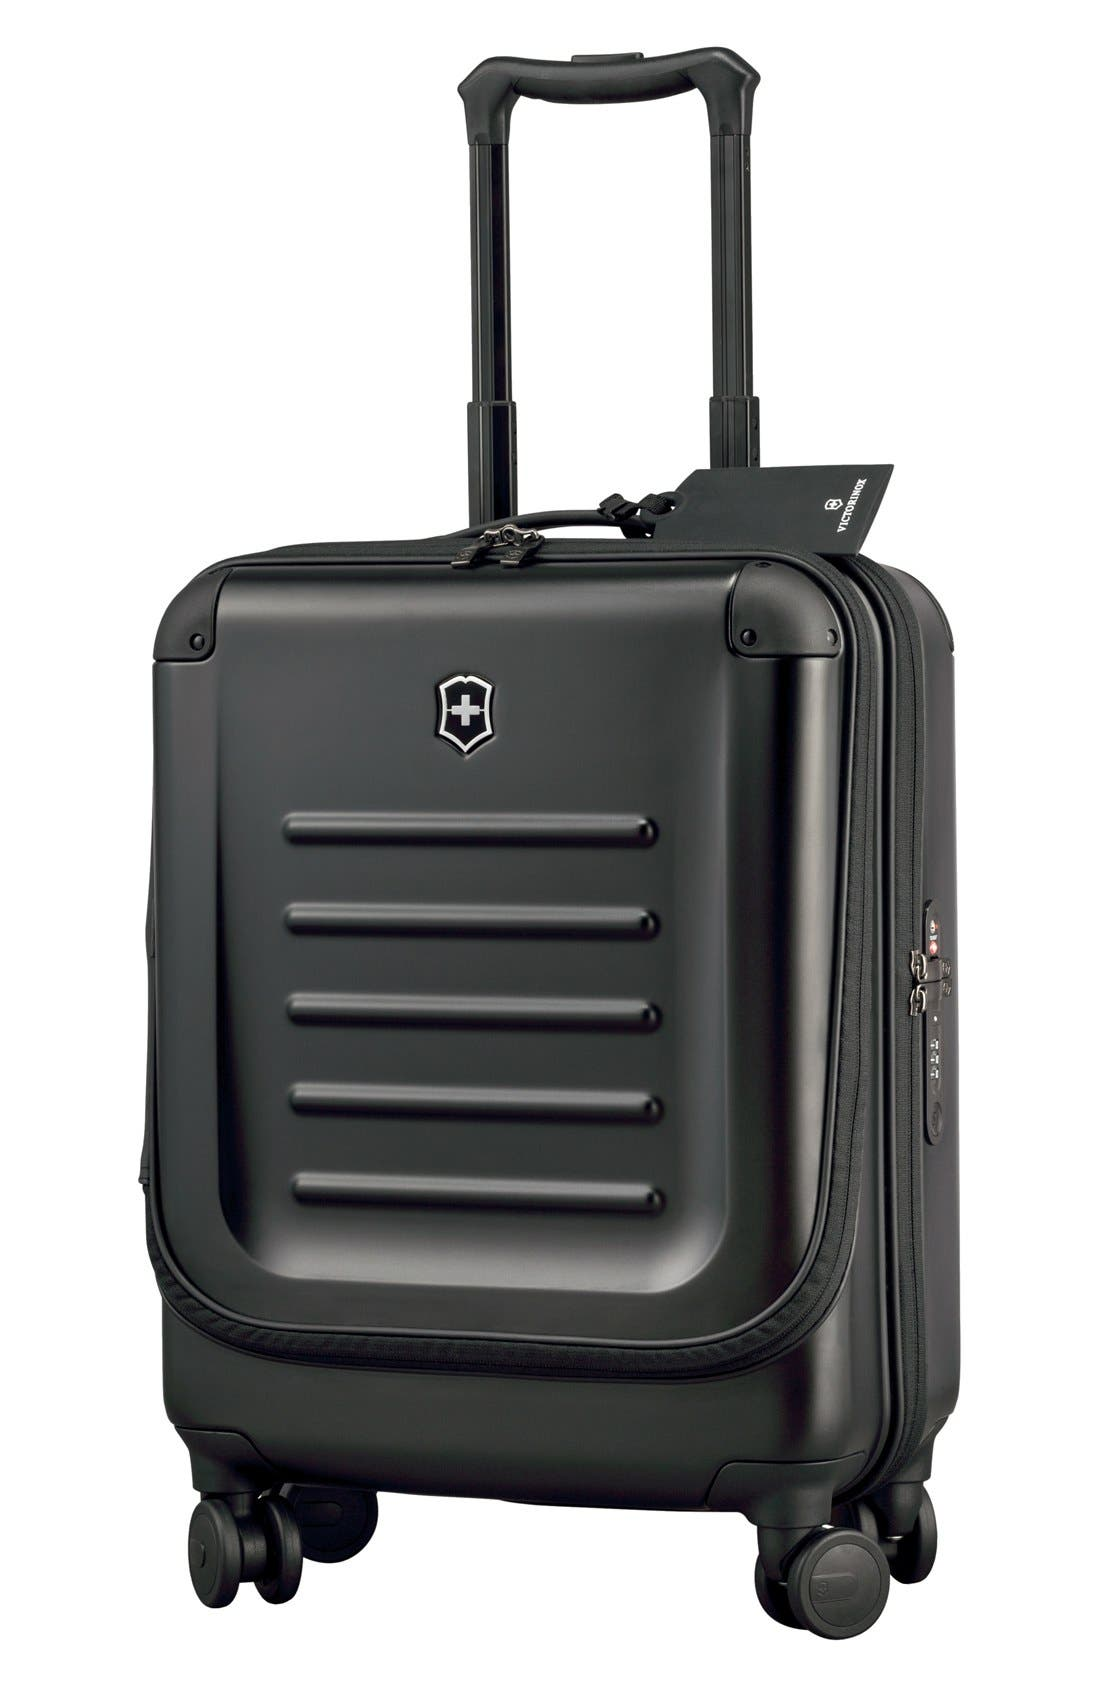 VICTORINOX SWISS ARMY<SUP>®</SUP> Spectra 2.0 Dual Access Global Hard Sided Rolling 22-Inch Carry-On, Main, color, 001